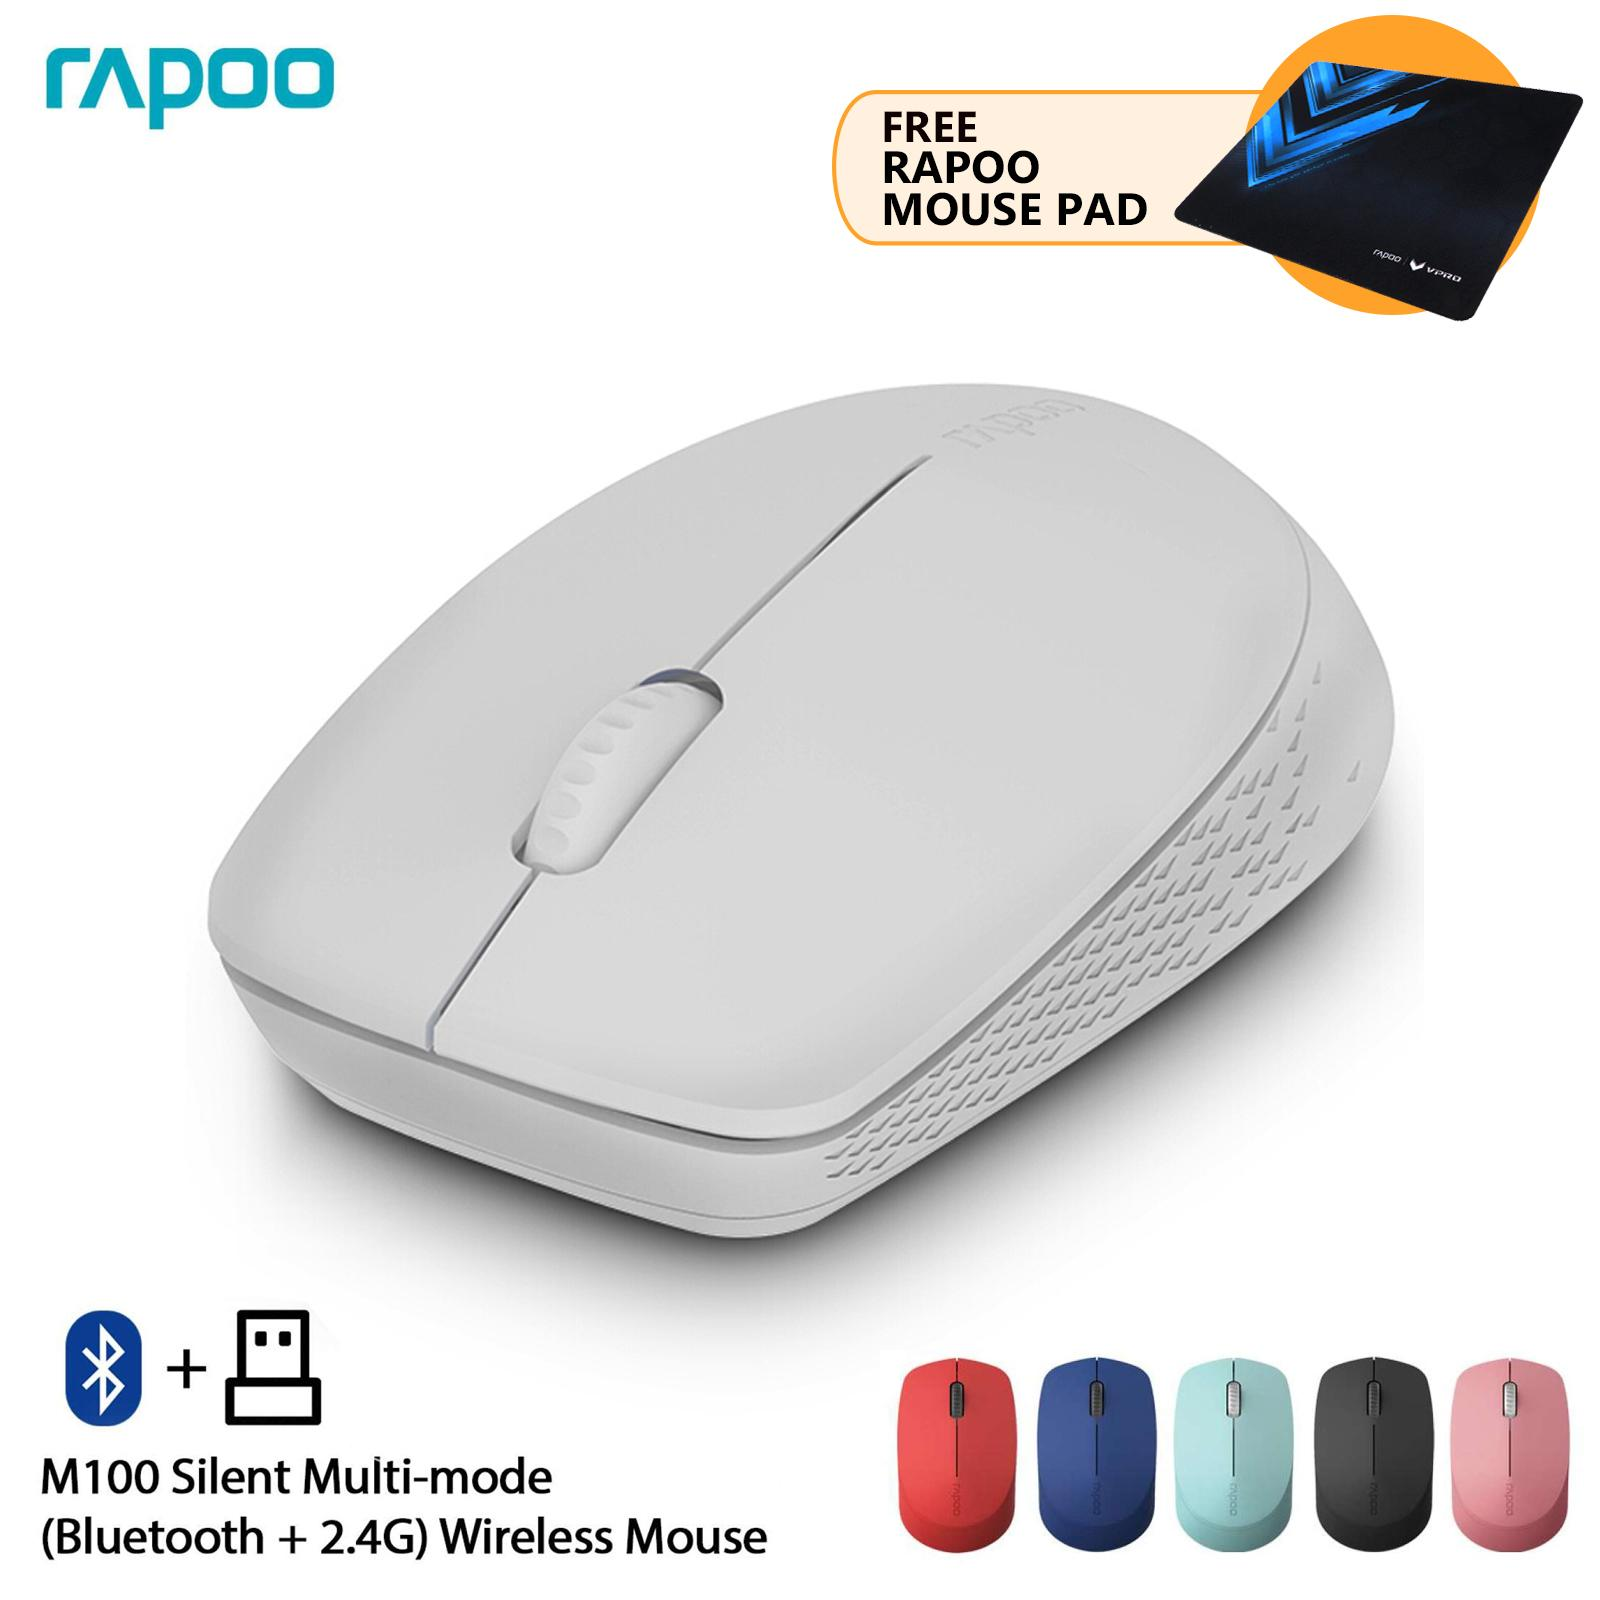 Computer Mouse For Sale Pc Mice Prices Brands Specs In Alcatroz Lithium L2 Rapoo M100 Silent Multi Mode 24g And Bluetooth Wireless Free Pad